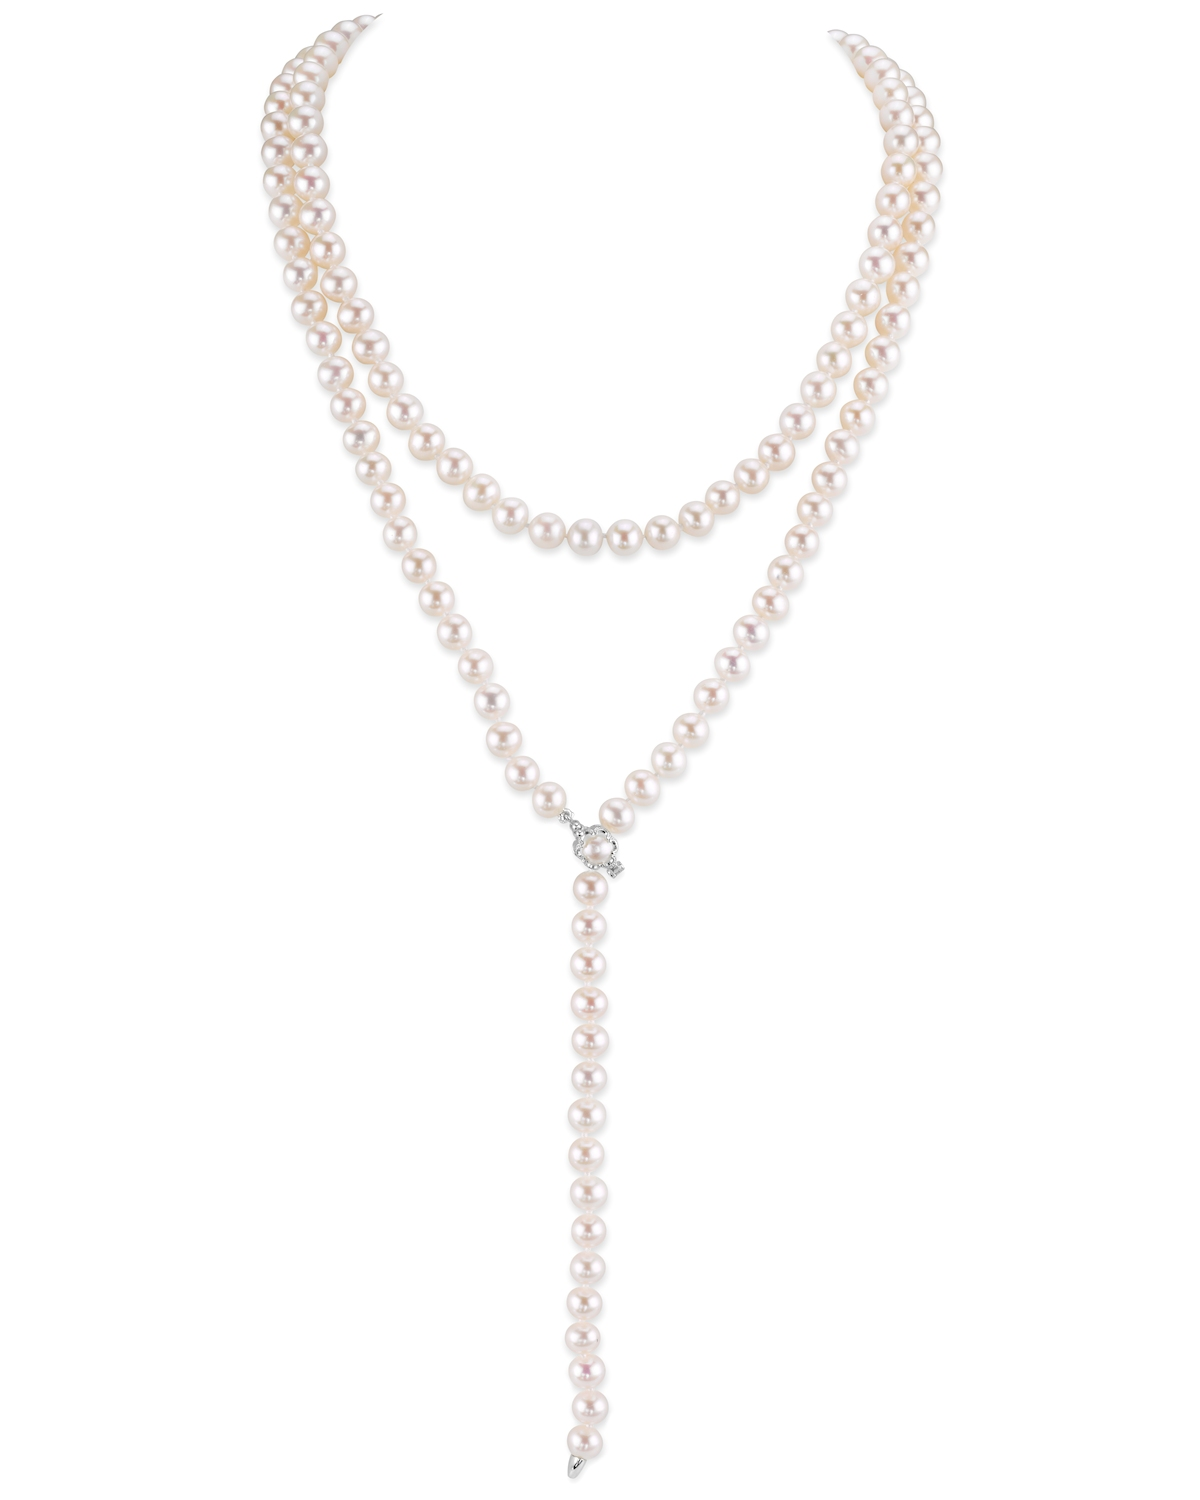 White Freshwater Pearl Adjustable Y-Shape 51 Inch Rope Length Necklace